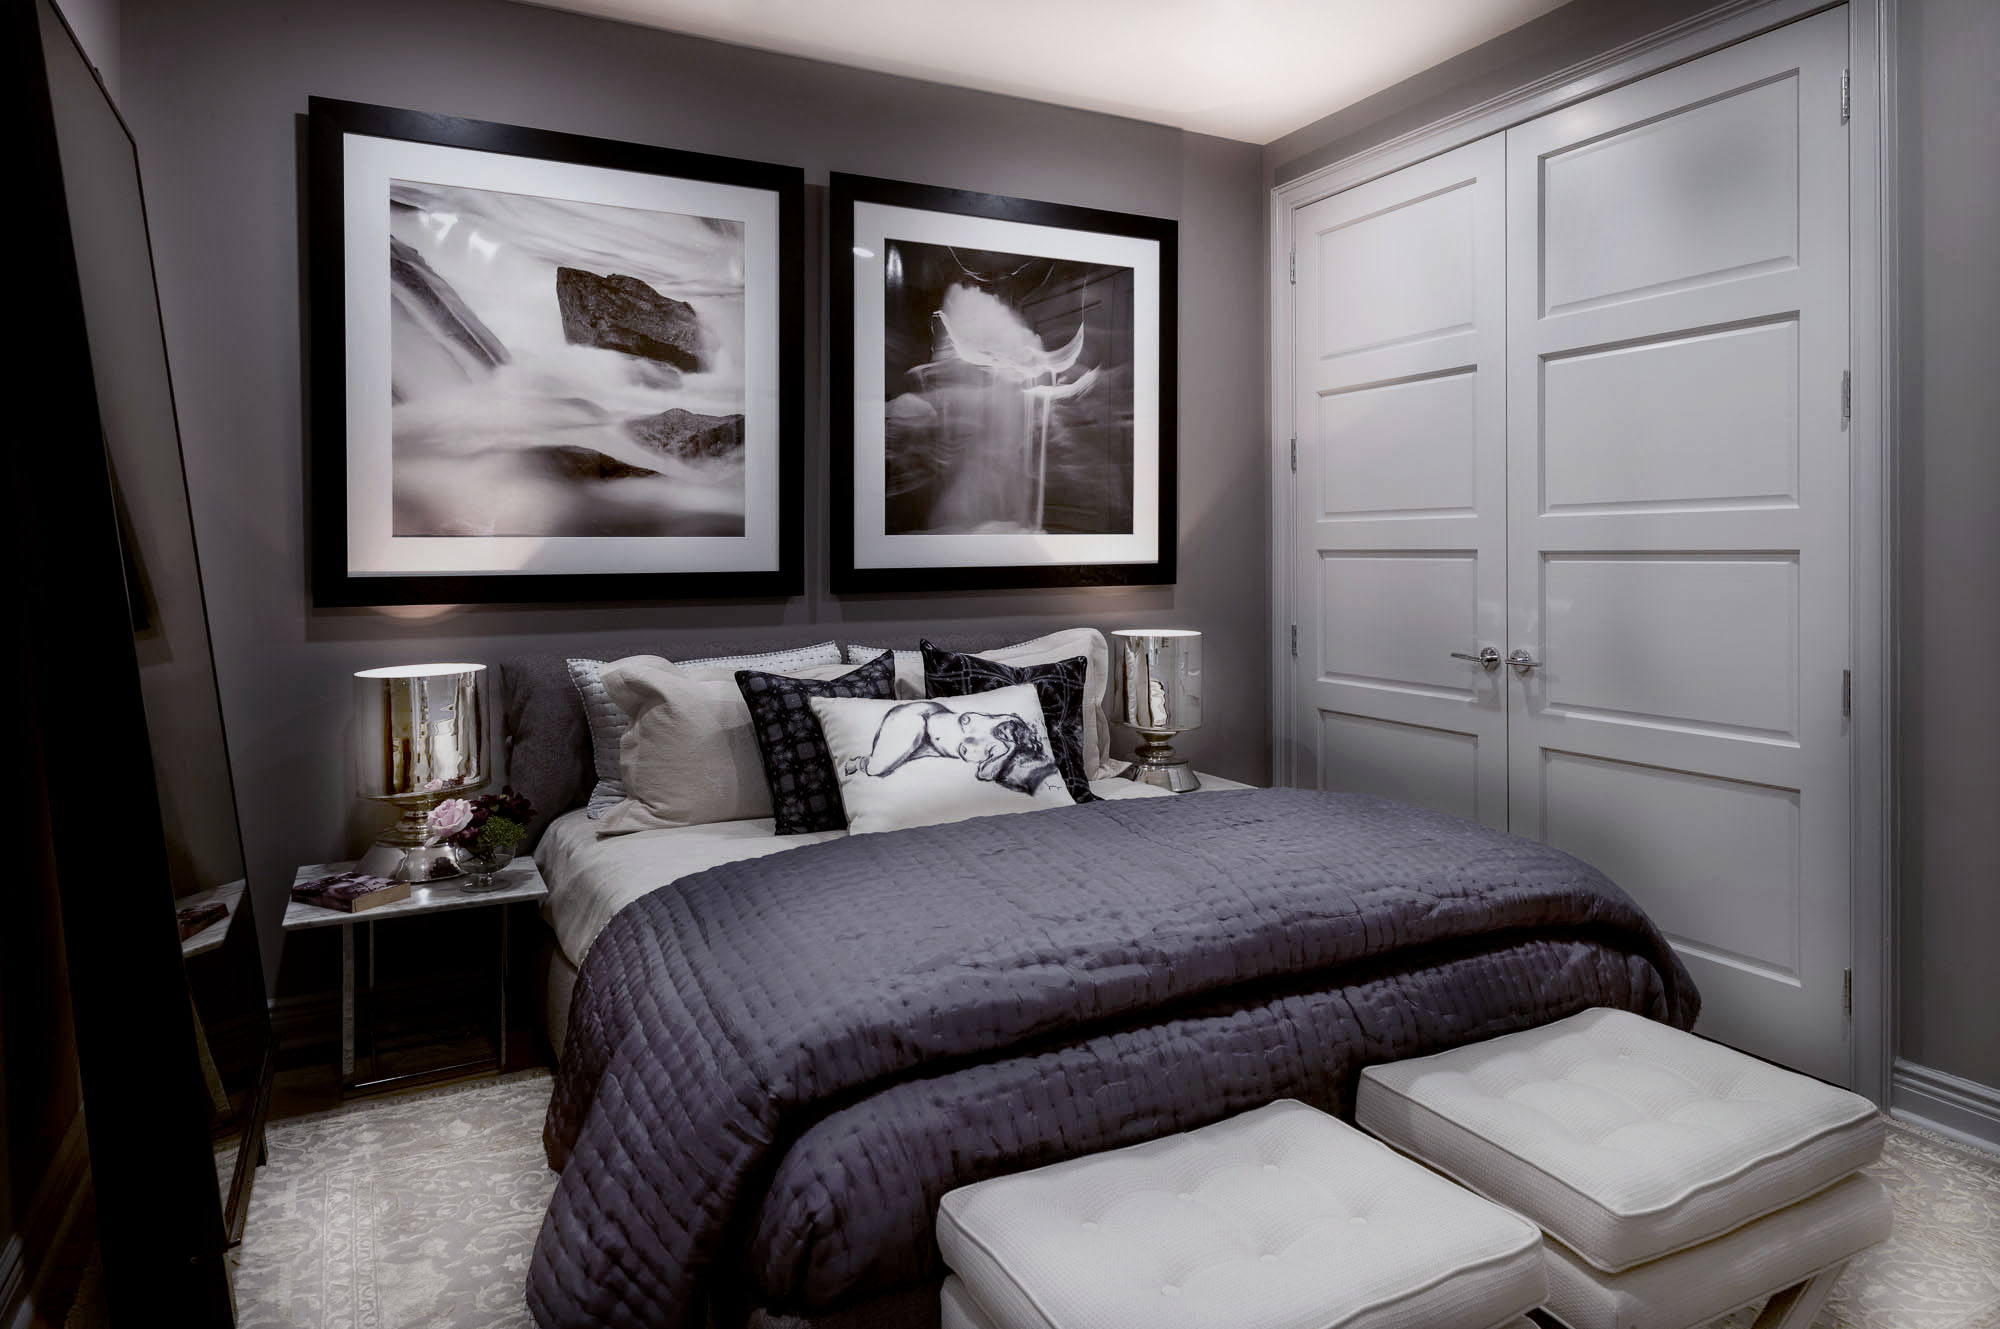 New York Residential Interior Design Firm |